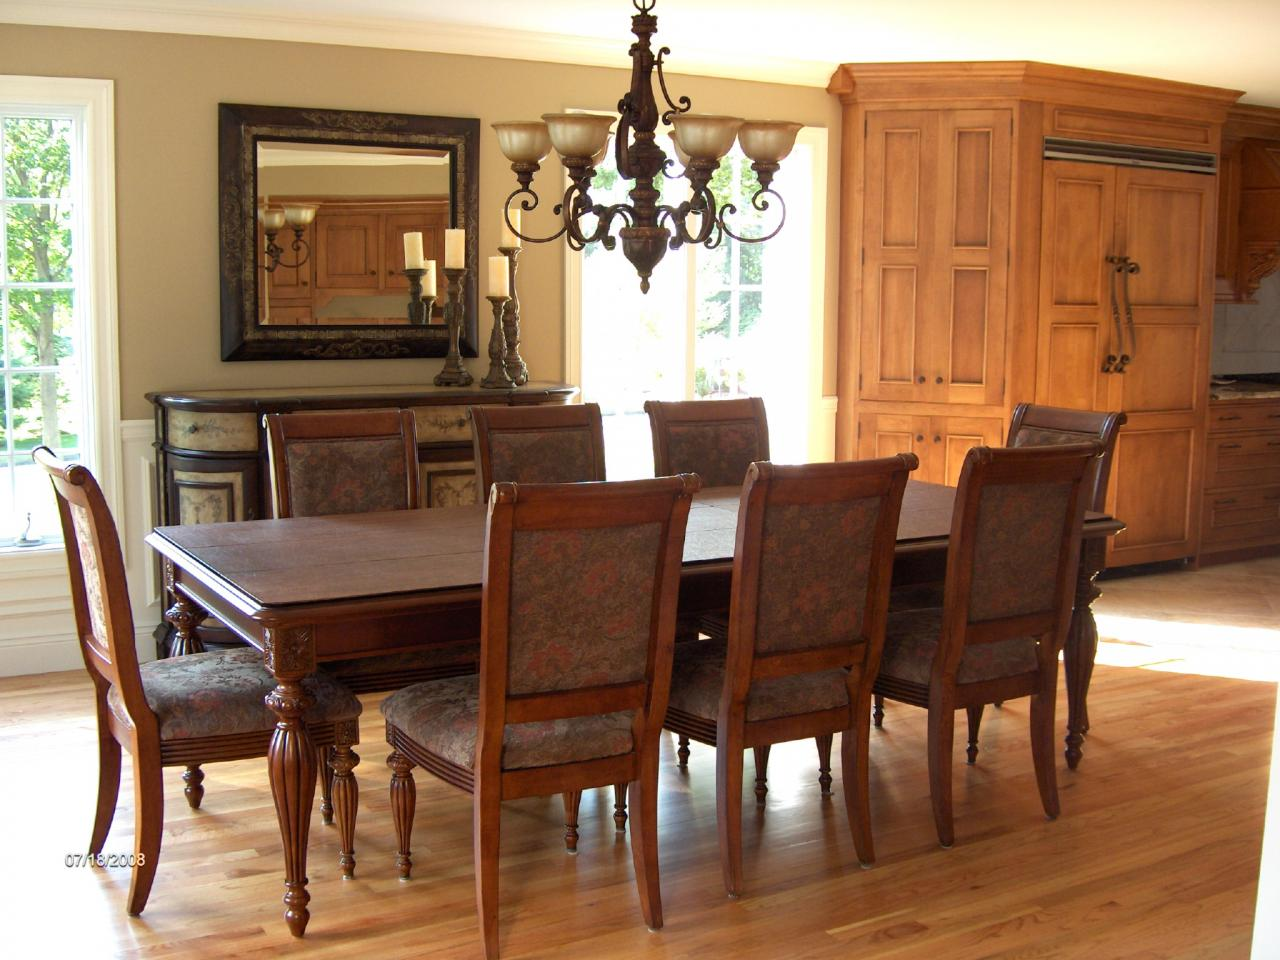 Elegant dining room sets home designer for Dining room set ideas